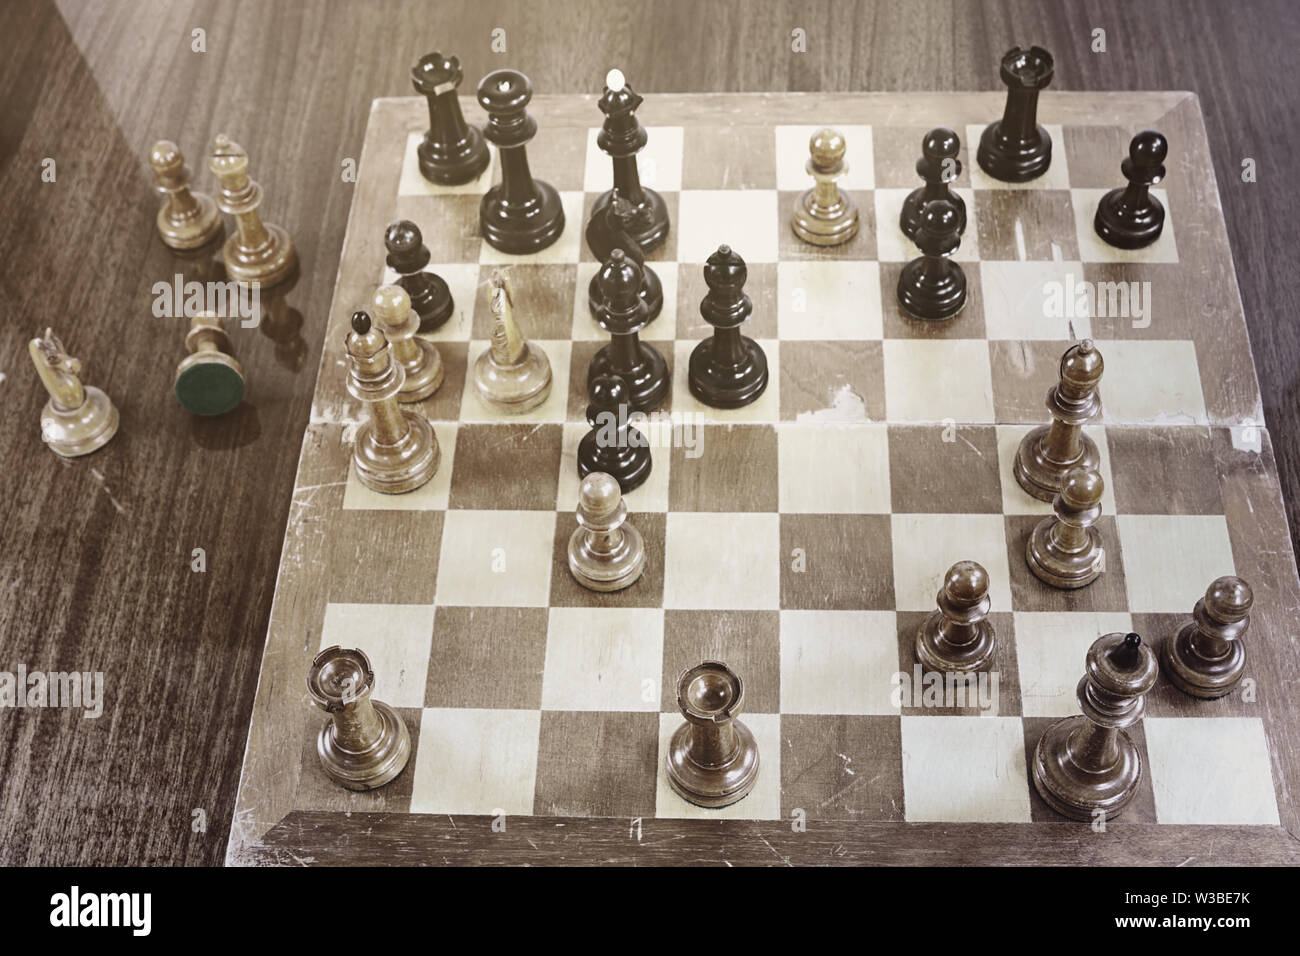 Unique chess match Tal - Geller, International Chess Tournament in Zurich, 1959. White wins. Retro effect - Stock Image